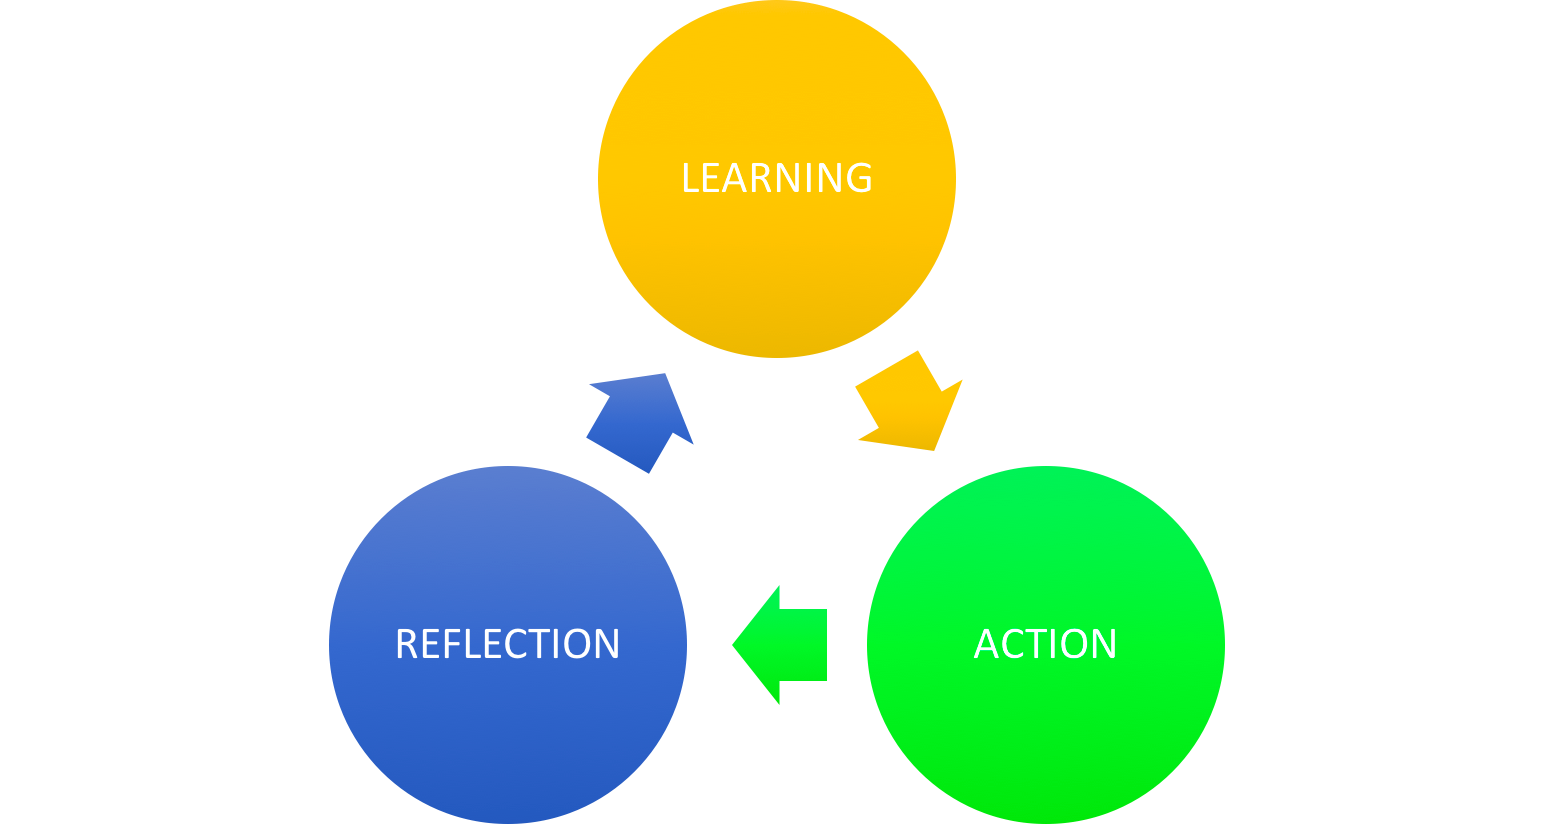 Learning Action Reflection Cycle